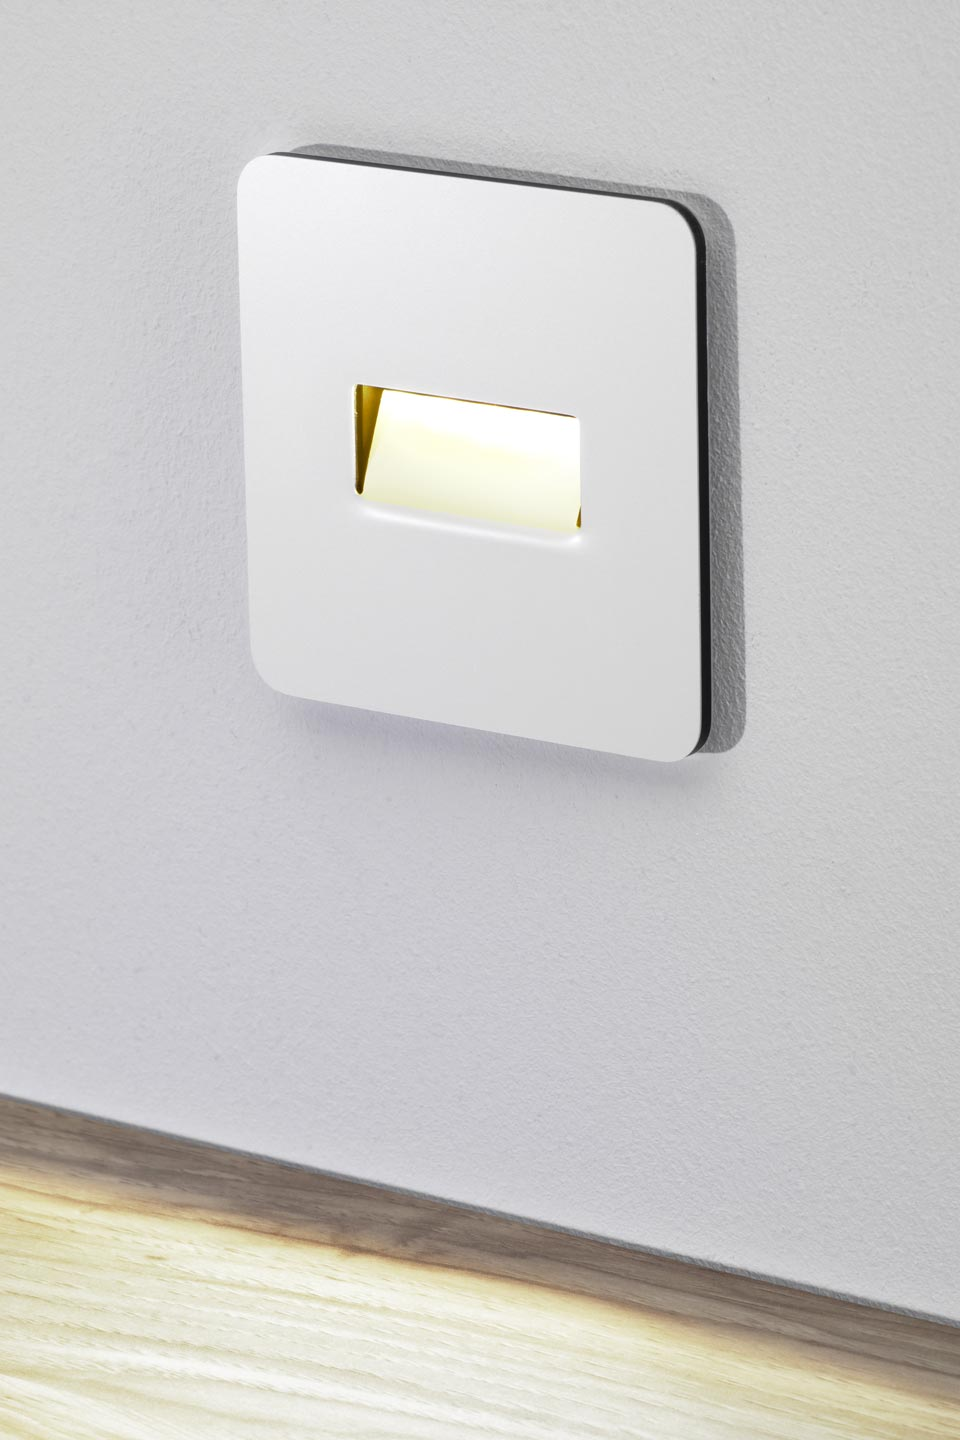 Antares balise lumineuse murale led blanche r f 13030013 - Eclairage led mural interieur ...